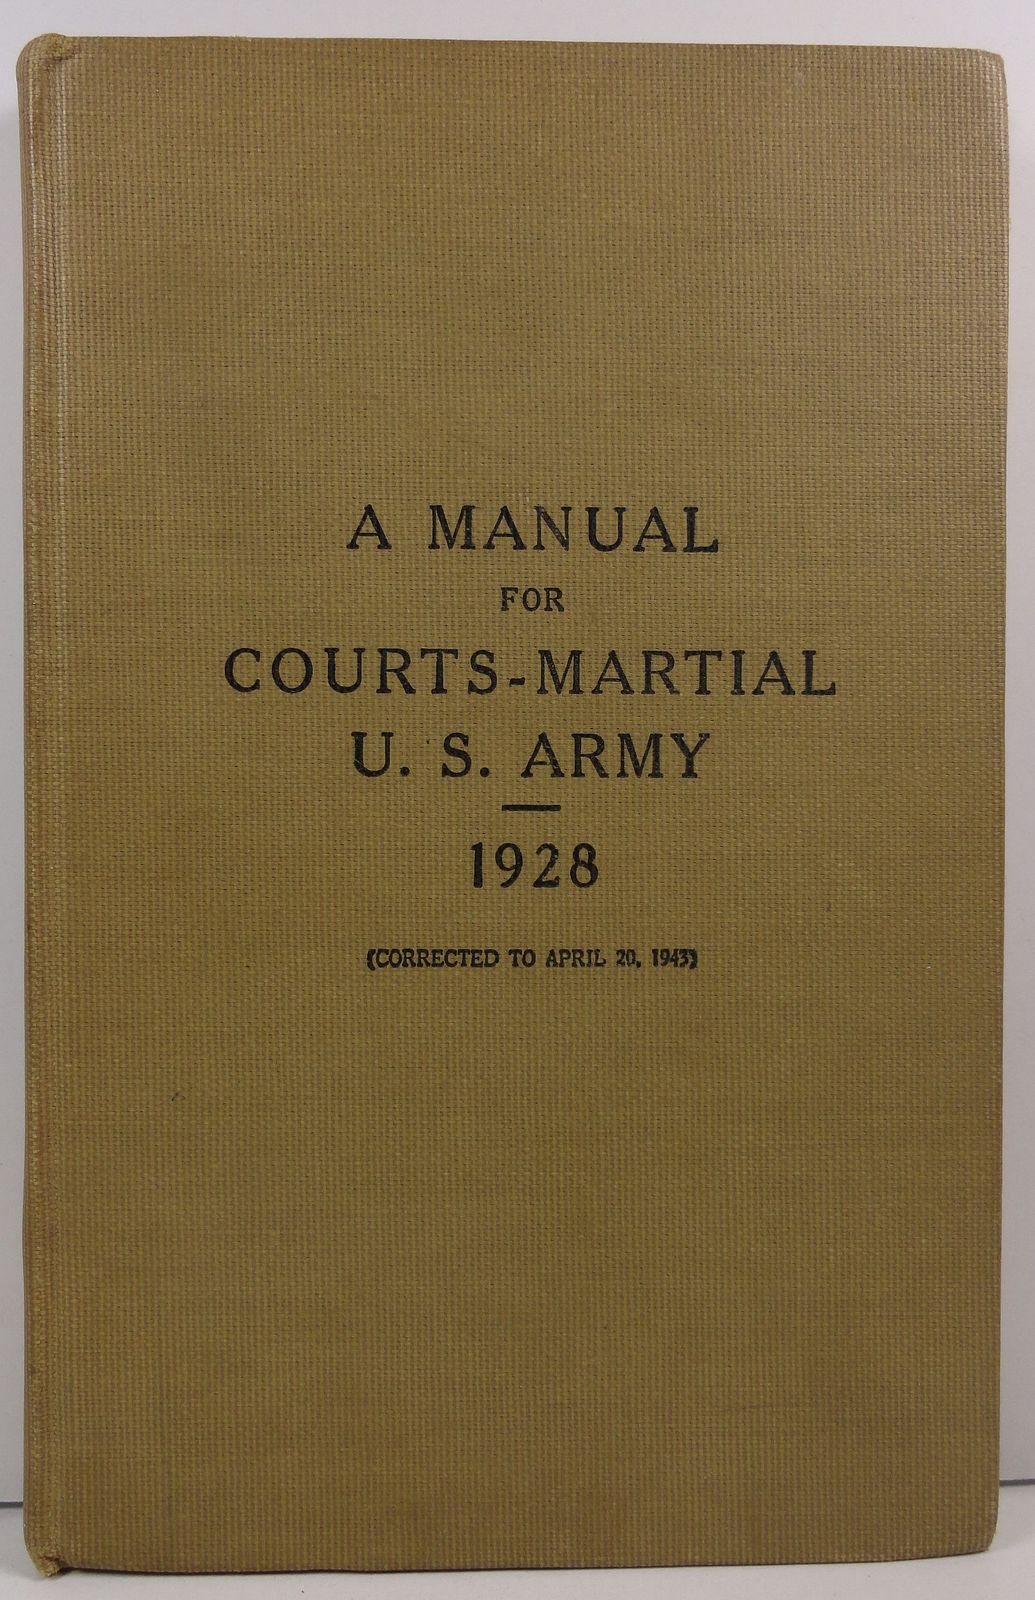 A Manual for Courts Martial U.S. Army 1928 Corrected to 1943